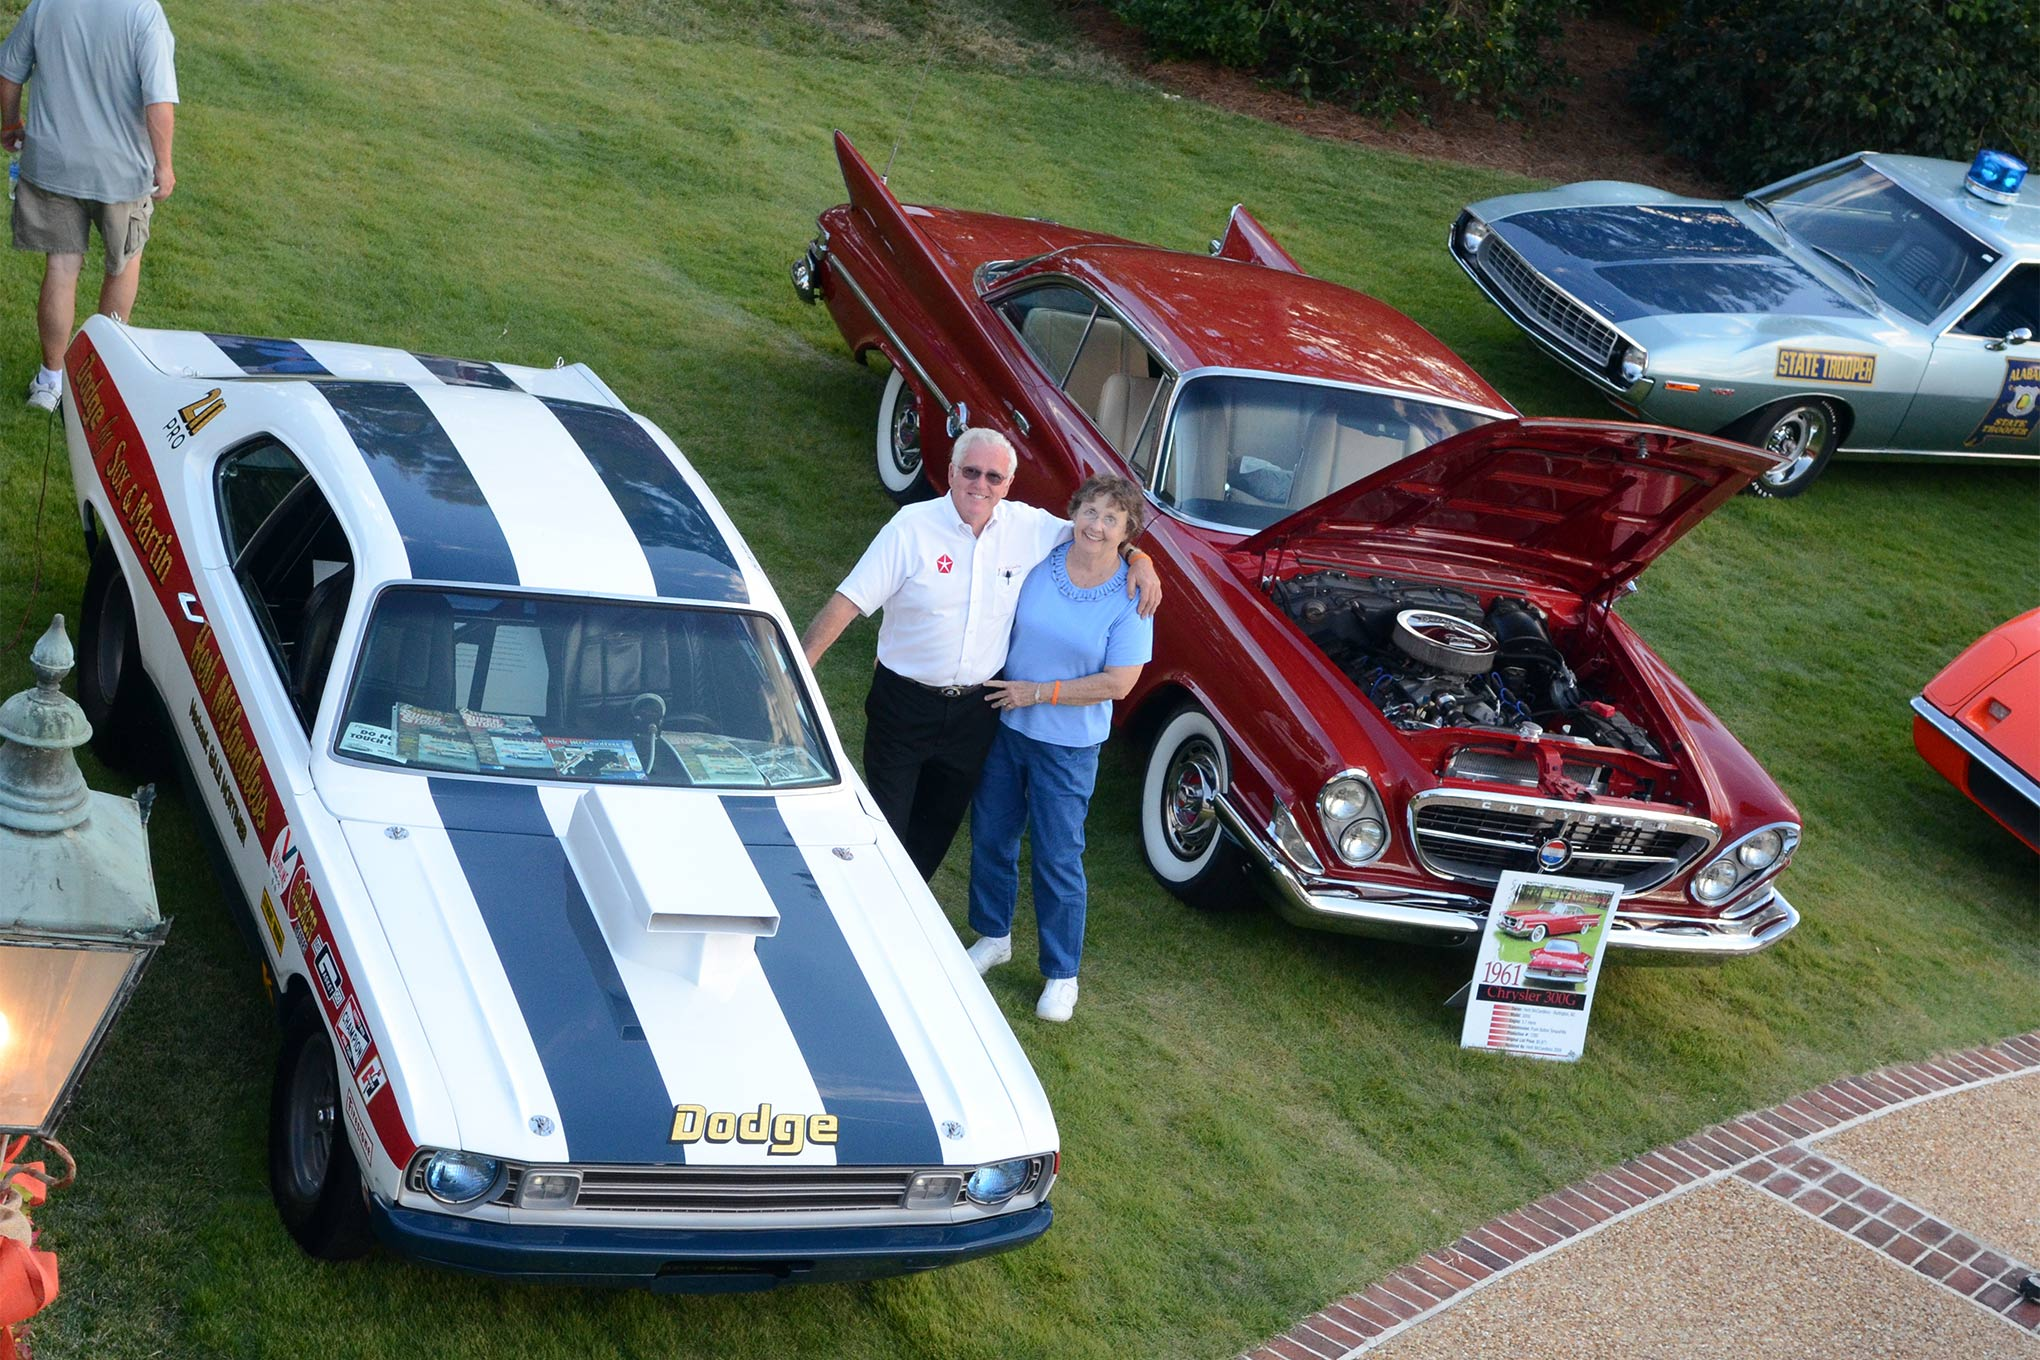 Legendary Pro Stock racer Herb McCandless and his wife, Marie. The restored Demon belongs to Todd Werner, and the 300G is Herb's repowered street cruiser.